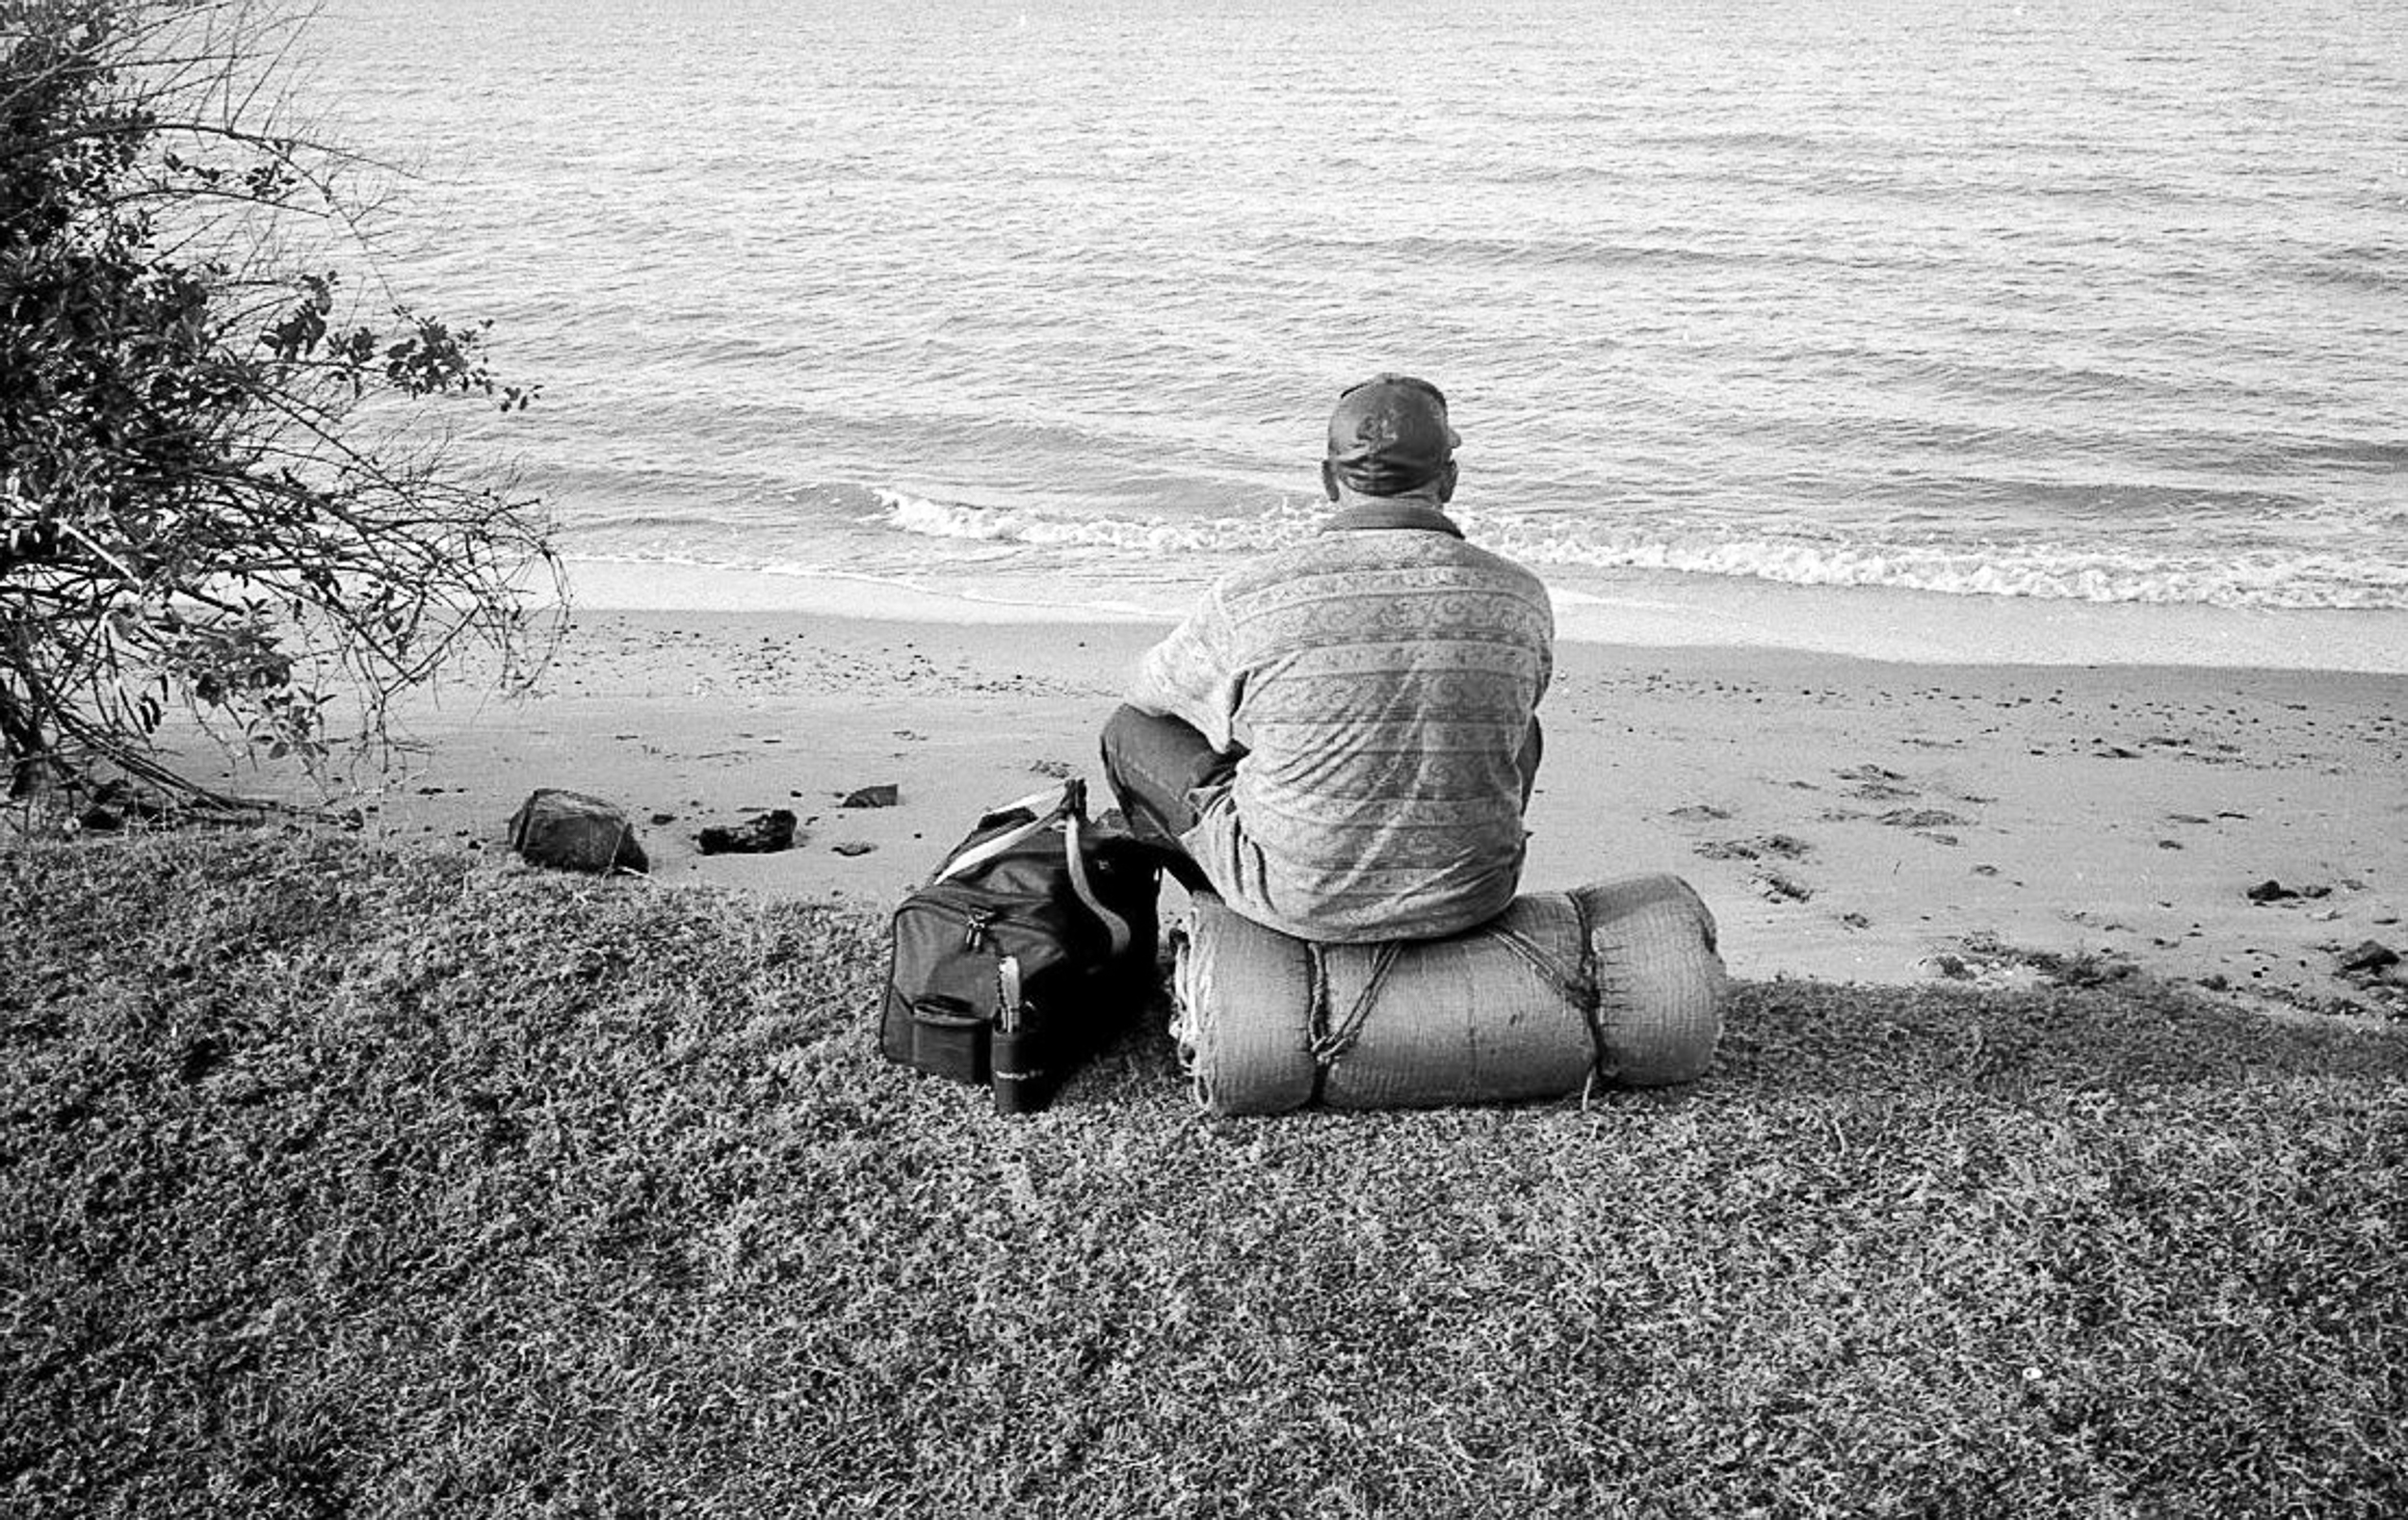 A man sits and looks at the occean.